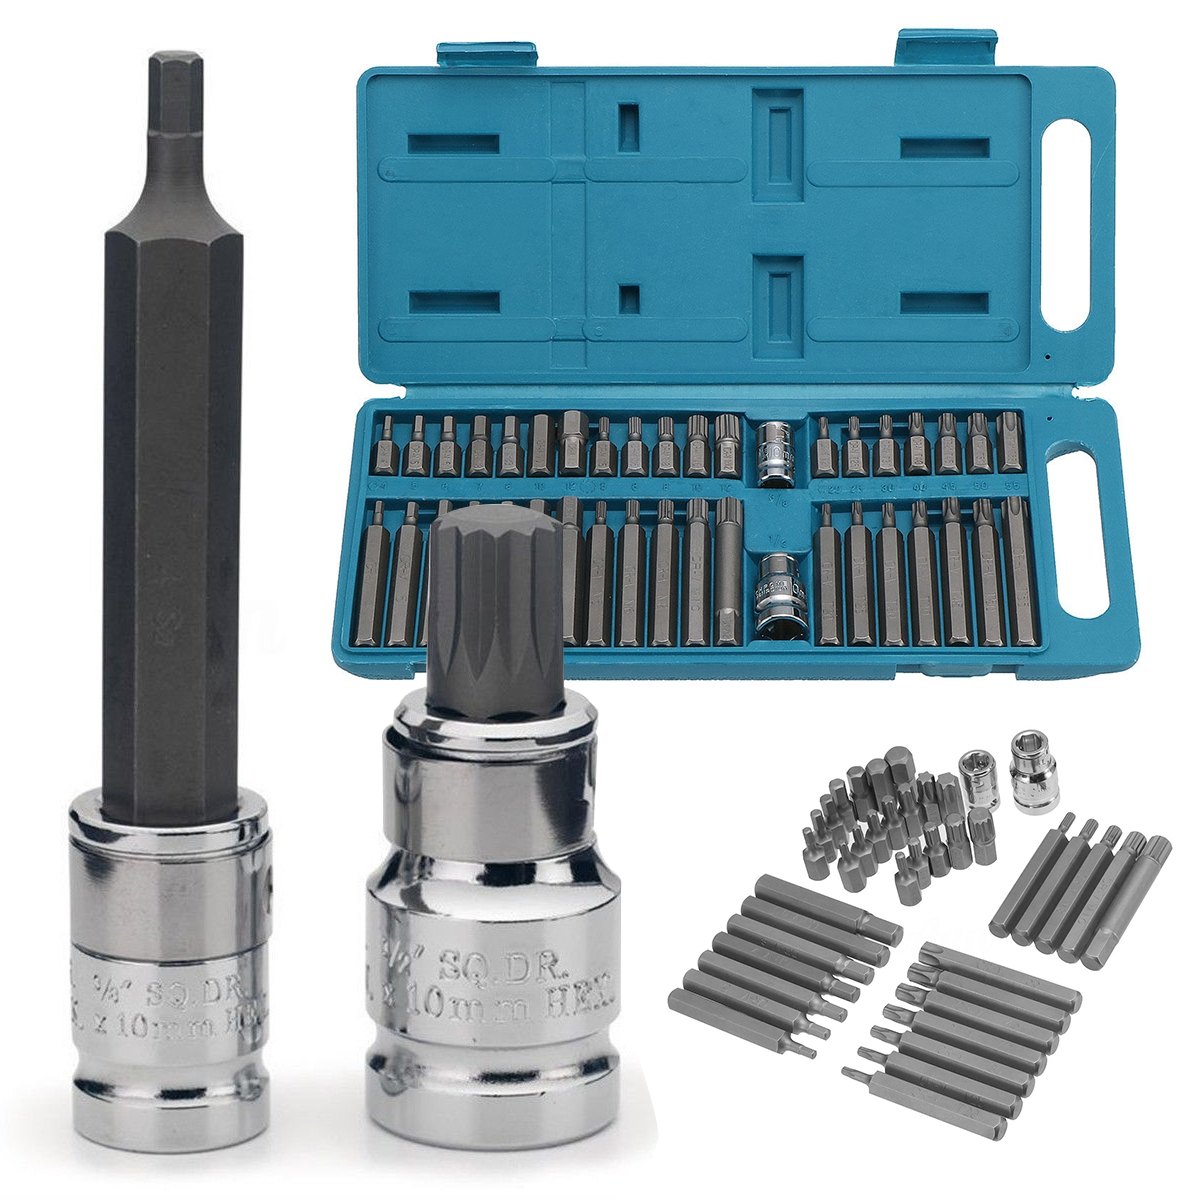 40Pcs 1/2'' 3/8'' Adaptor Drive Shank Hex Torx XZN Spline Star Impact Socket Set Metric Socket Set Ratchet Driver Socket Wrench